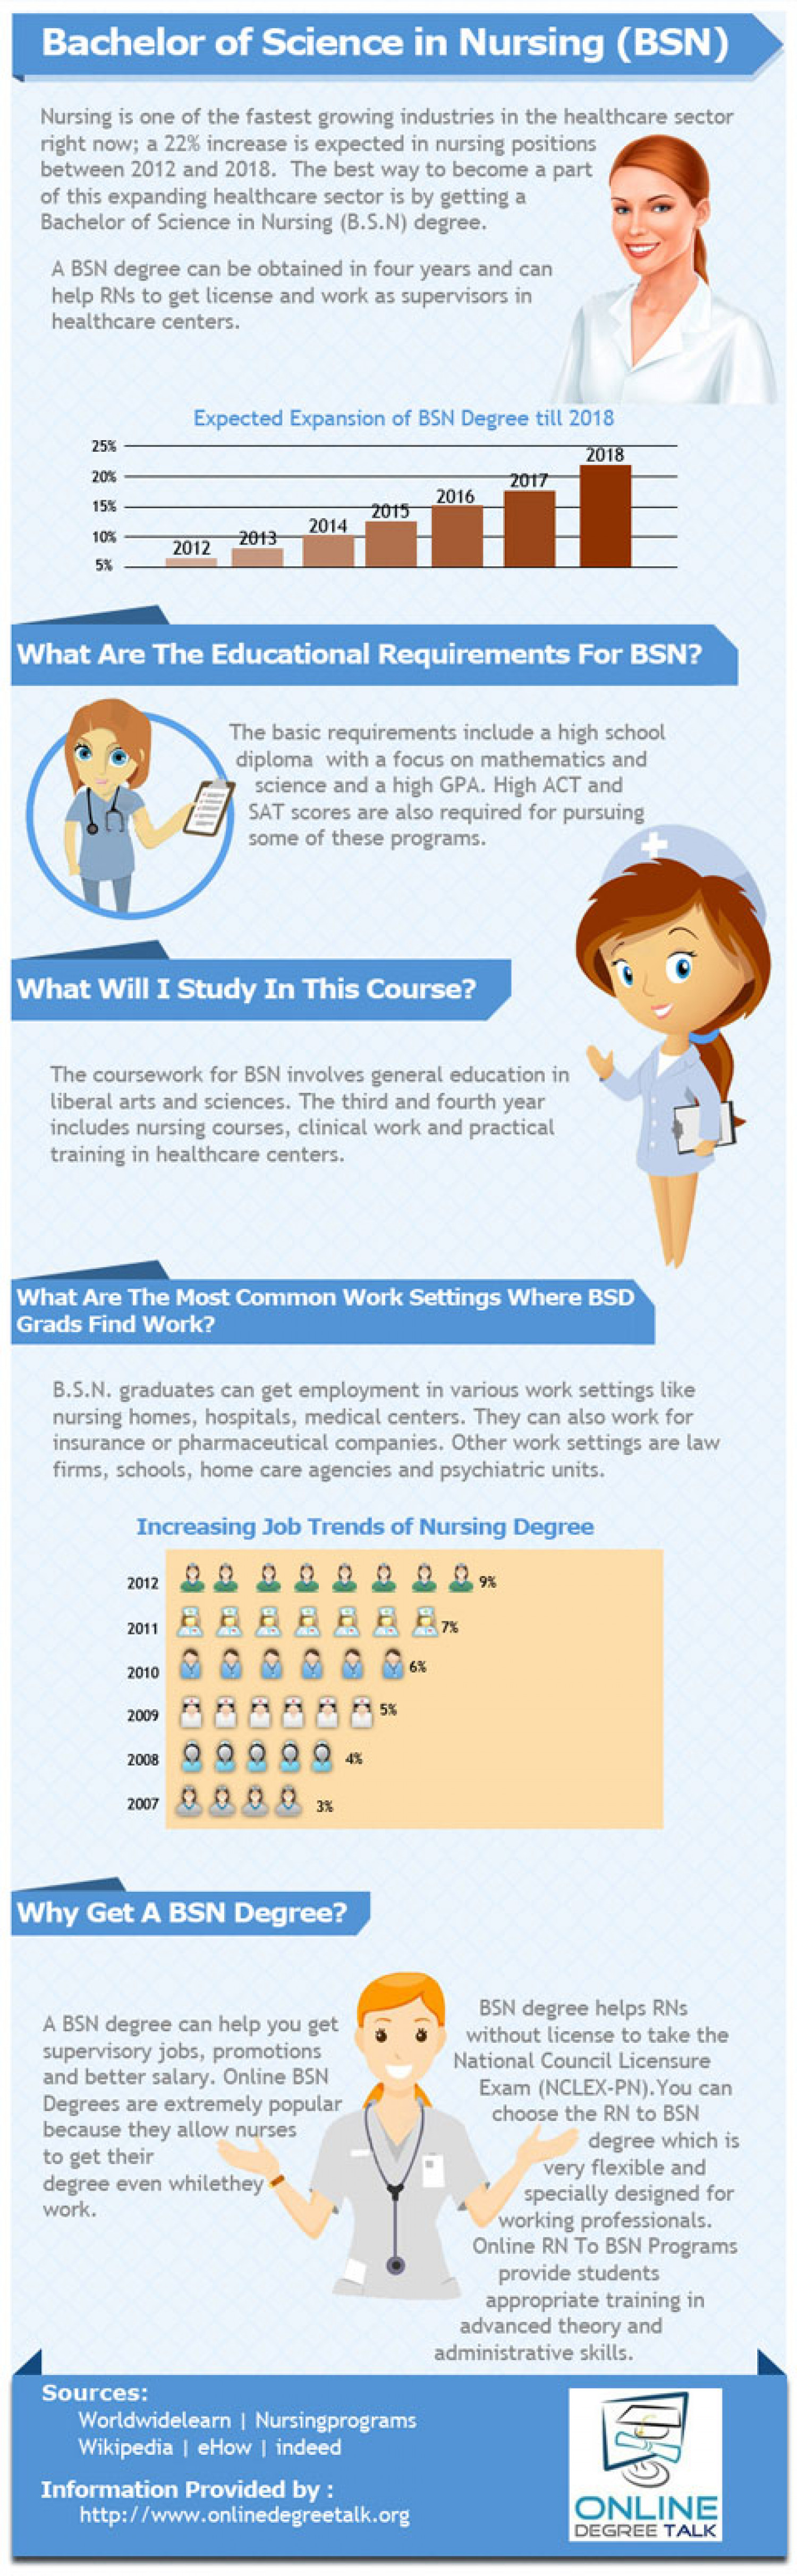 Infographic: Bachelor of Science in Nursing (BSN) Infographic